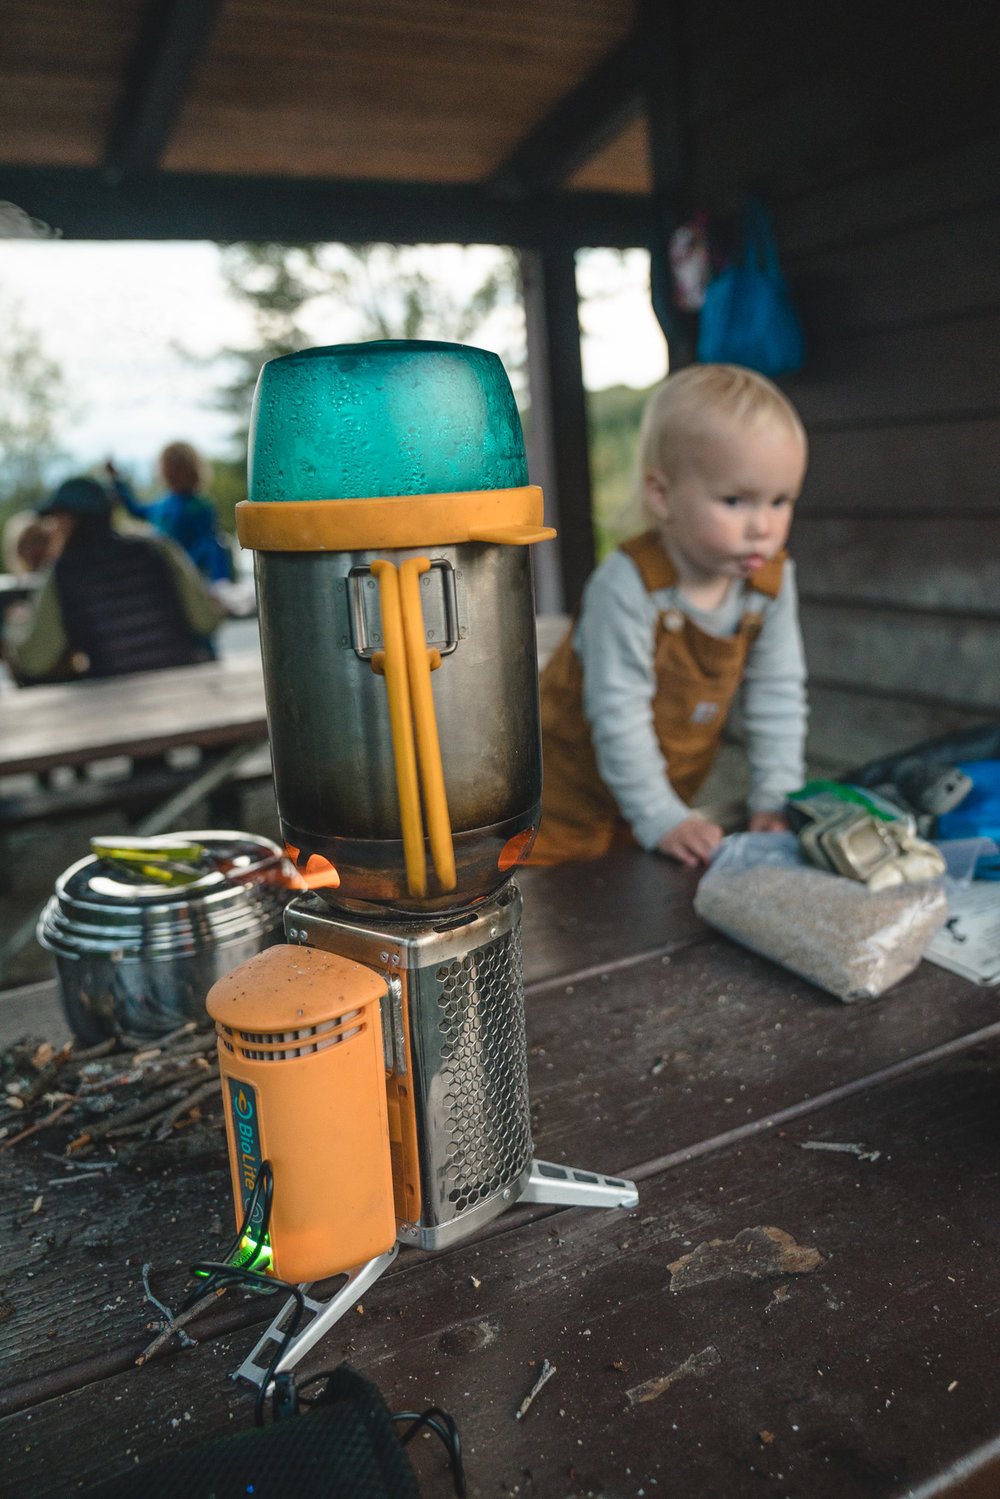 This BioLite stove is just about our favorite thing ever. Burns twigs so you don